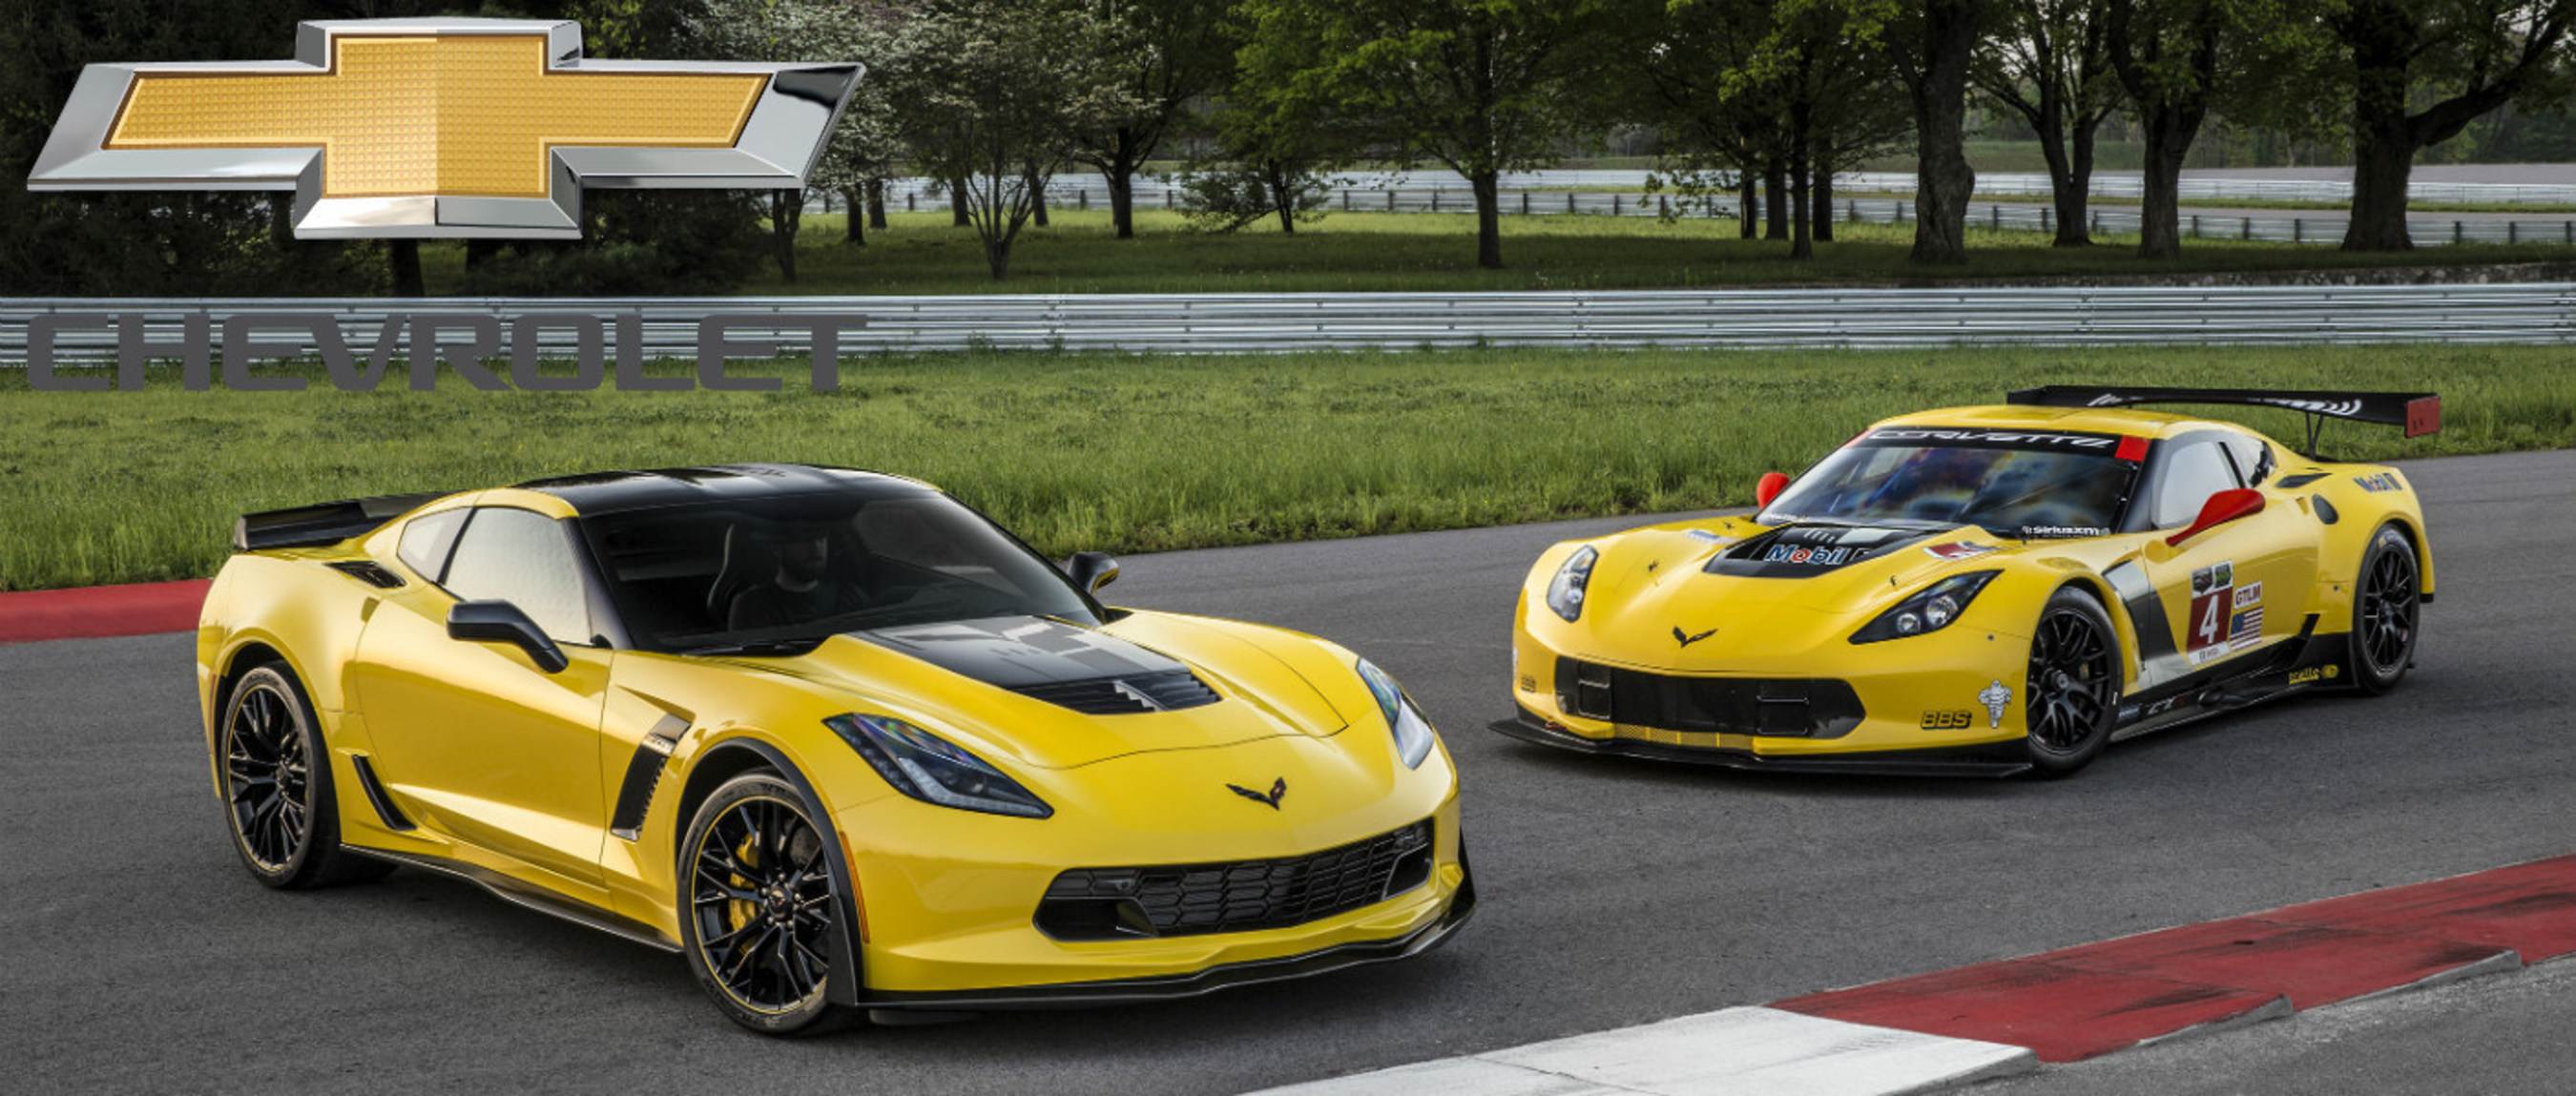 2016 Corvette Z06 and Camaro Convertible best version built yet